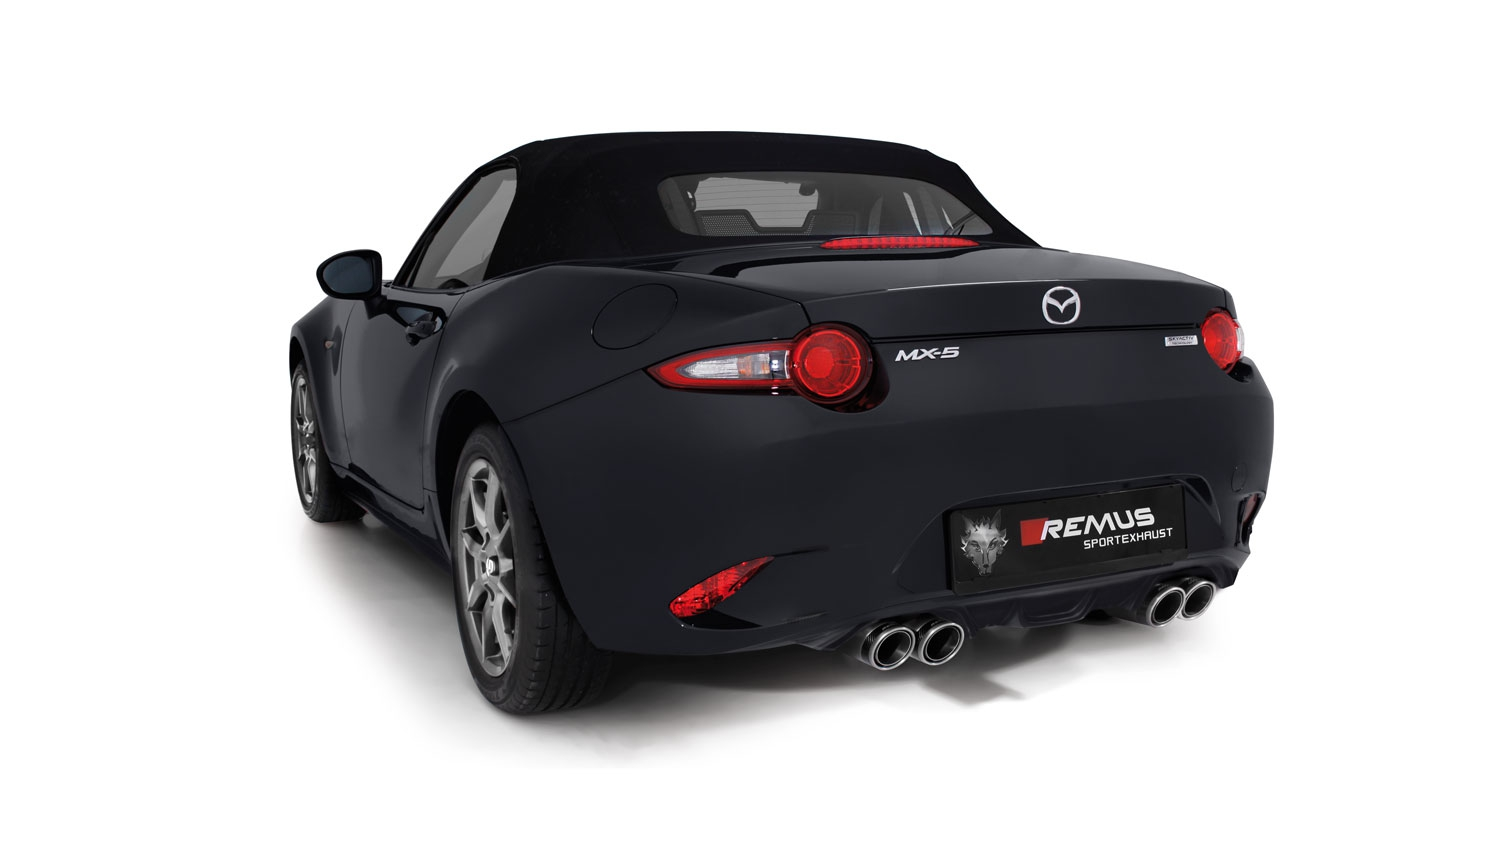 remus news remus product information 26 2016 mazda mx 5 type nd. Black Bedroom Furniture Sets. Home Design Ideas